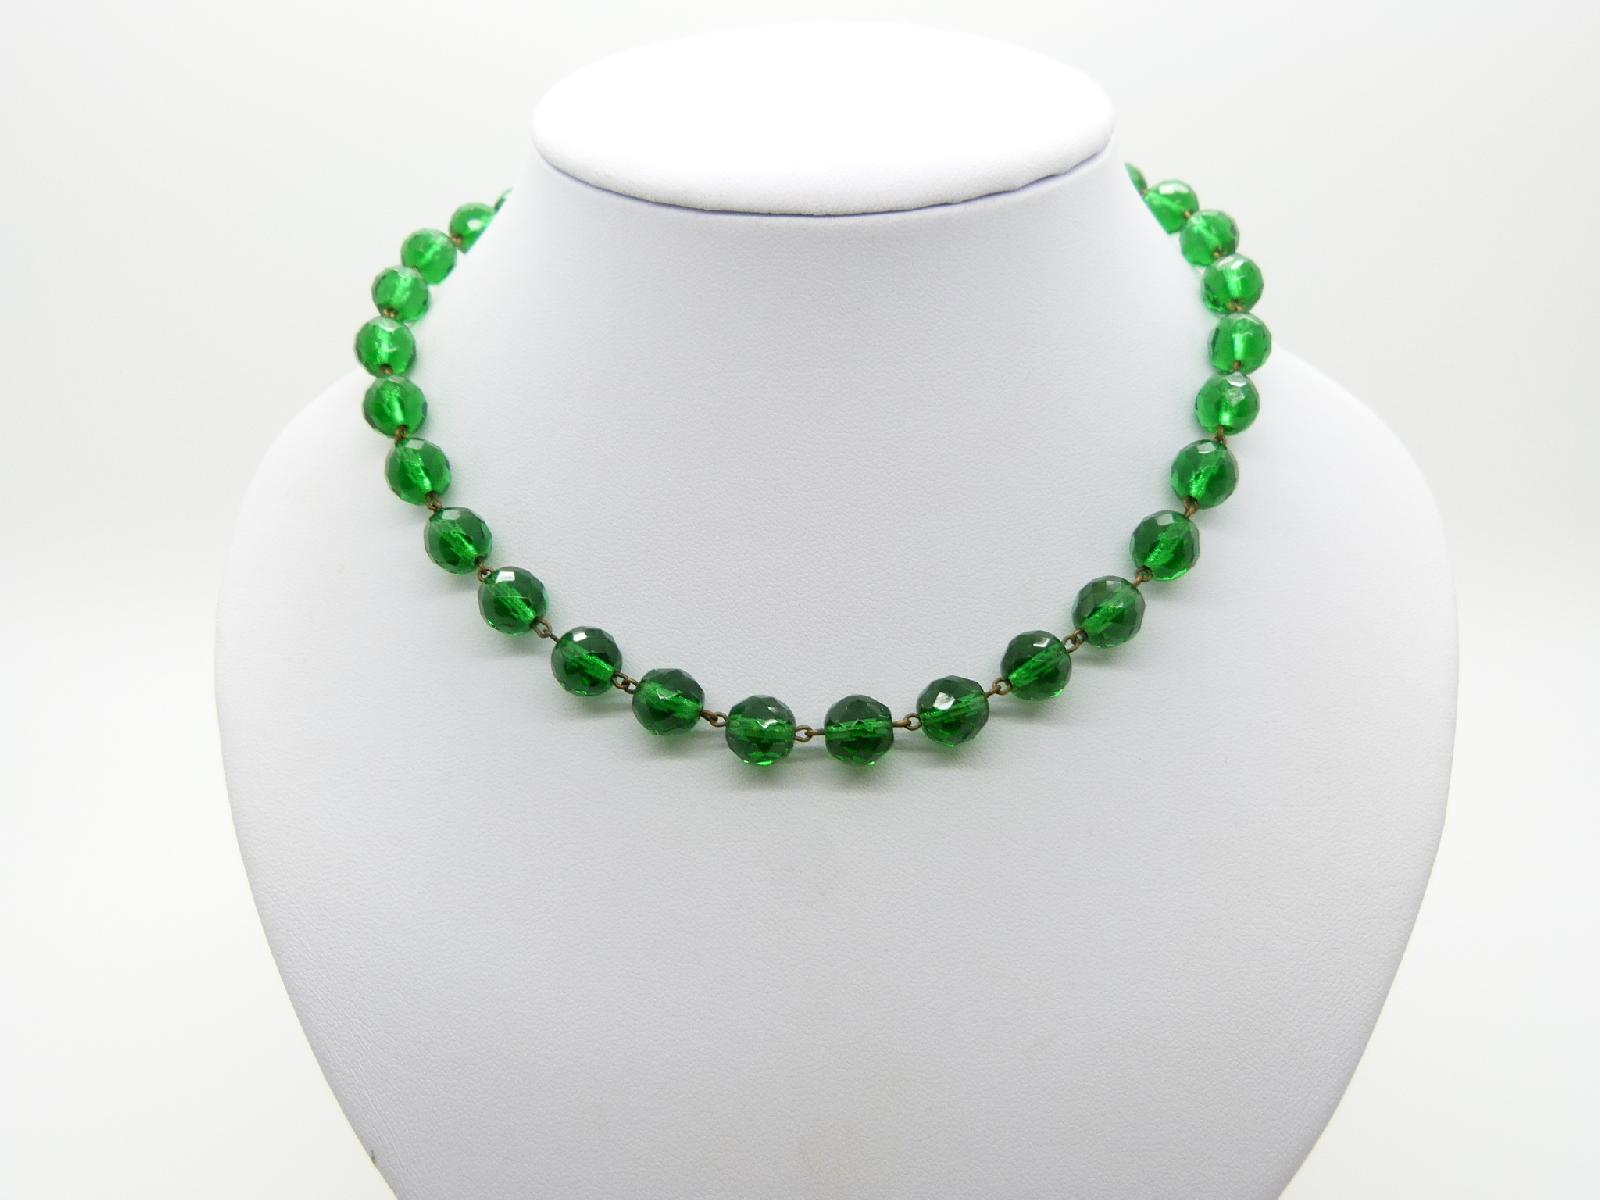 Vintage 30s Stunning Emerald Green Crystal  Faceted Glass Bead Necklace